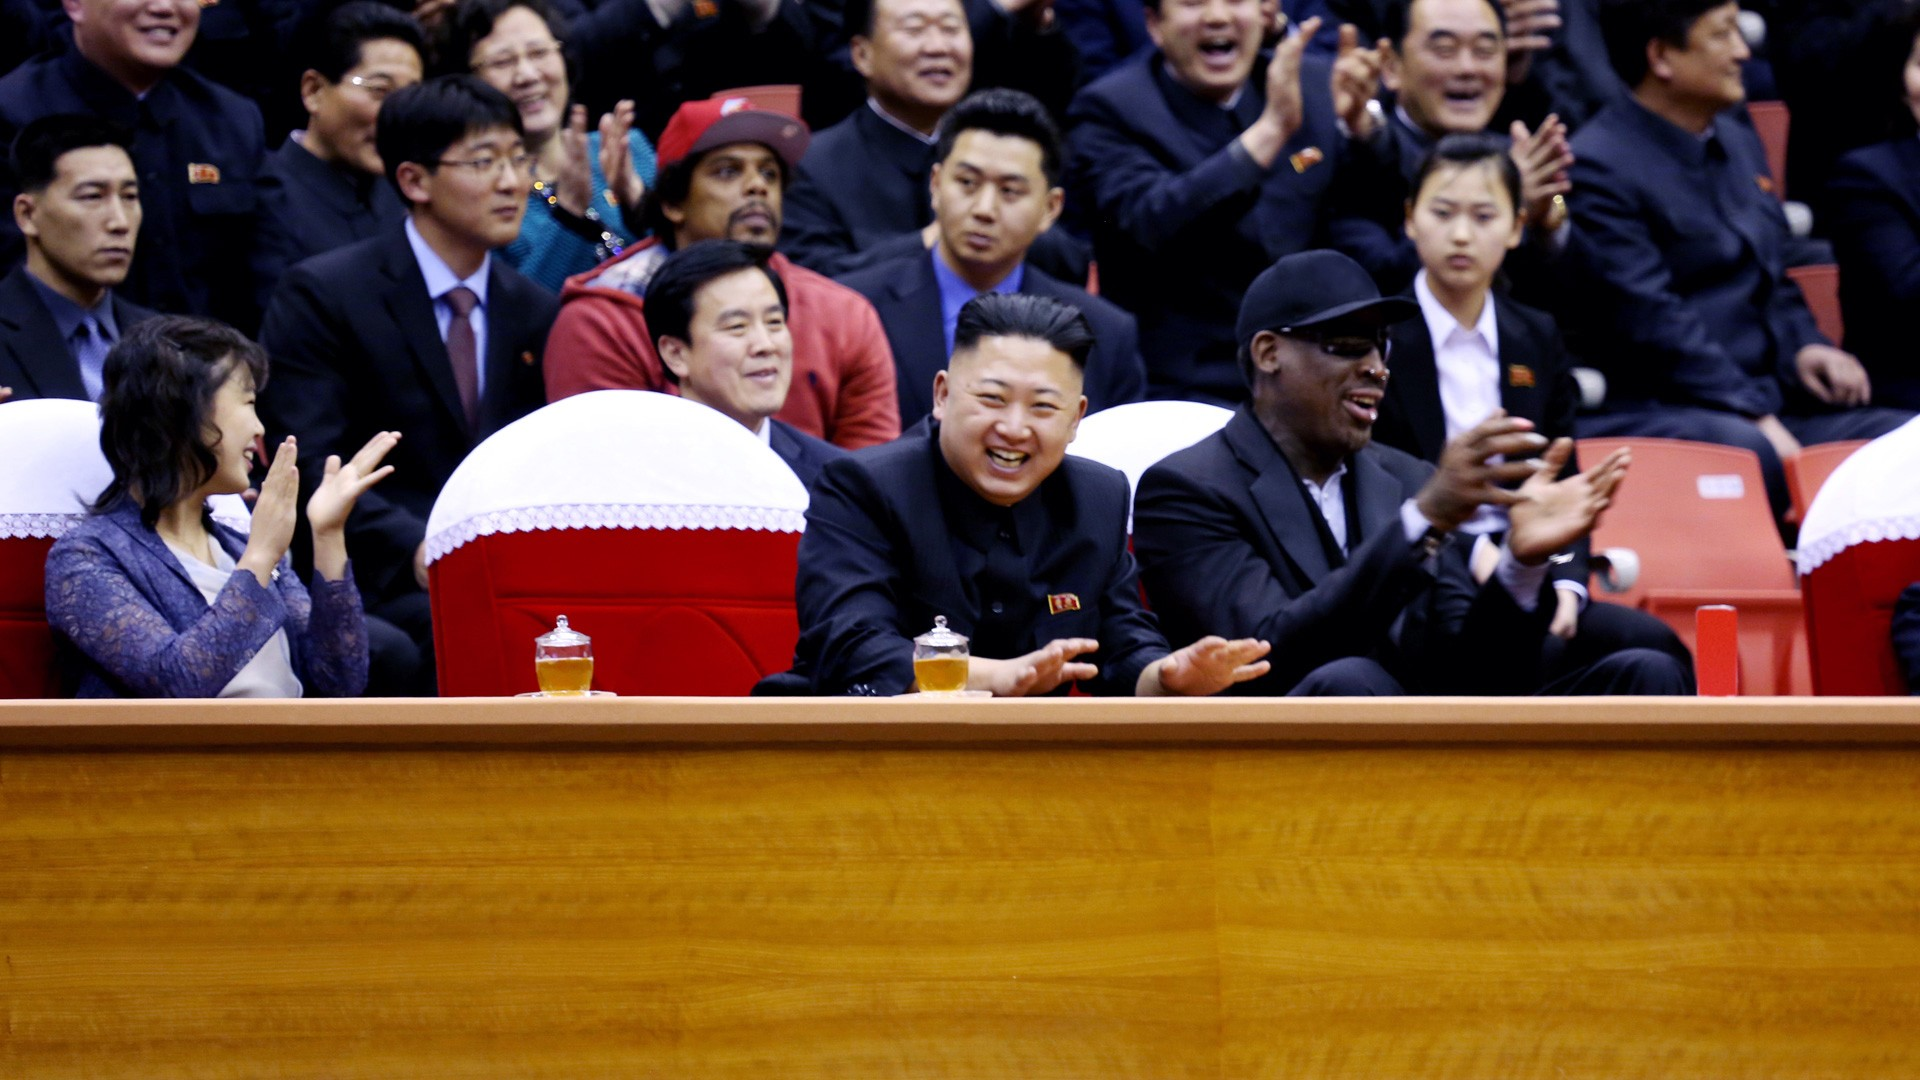 The Hermit Kingdom (Basketball Diplomacy)